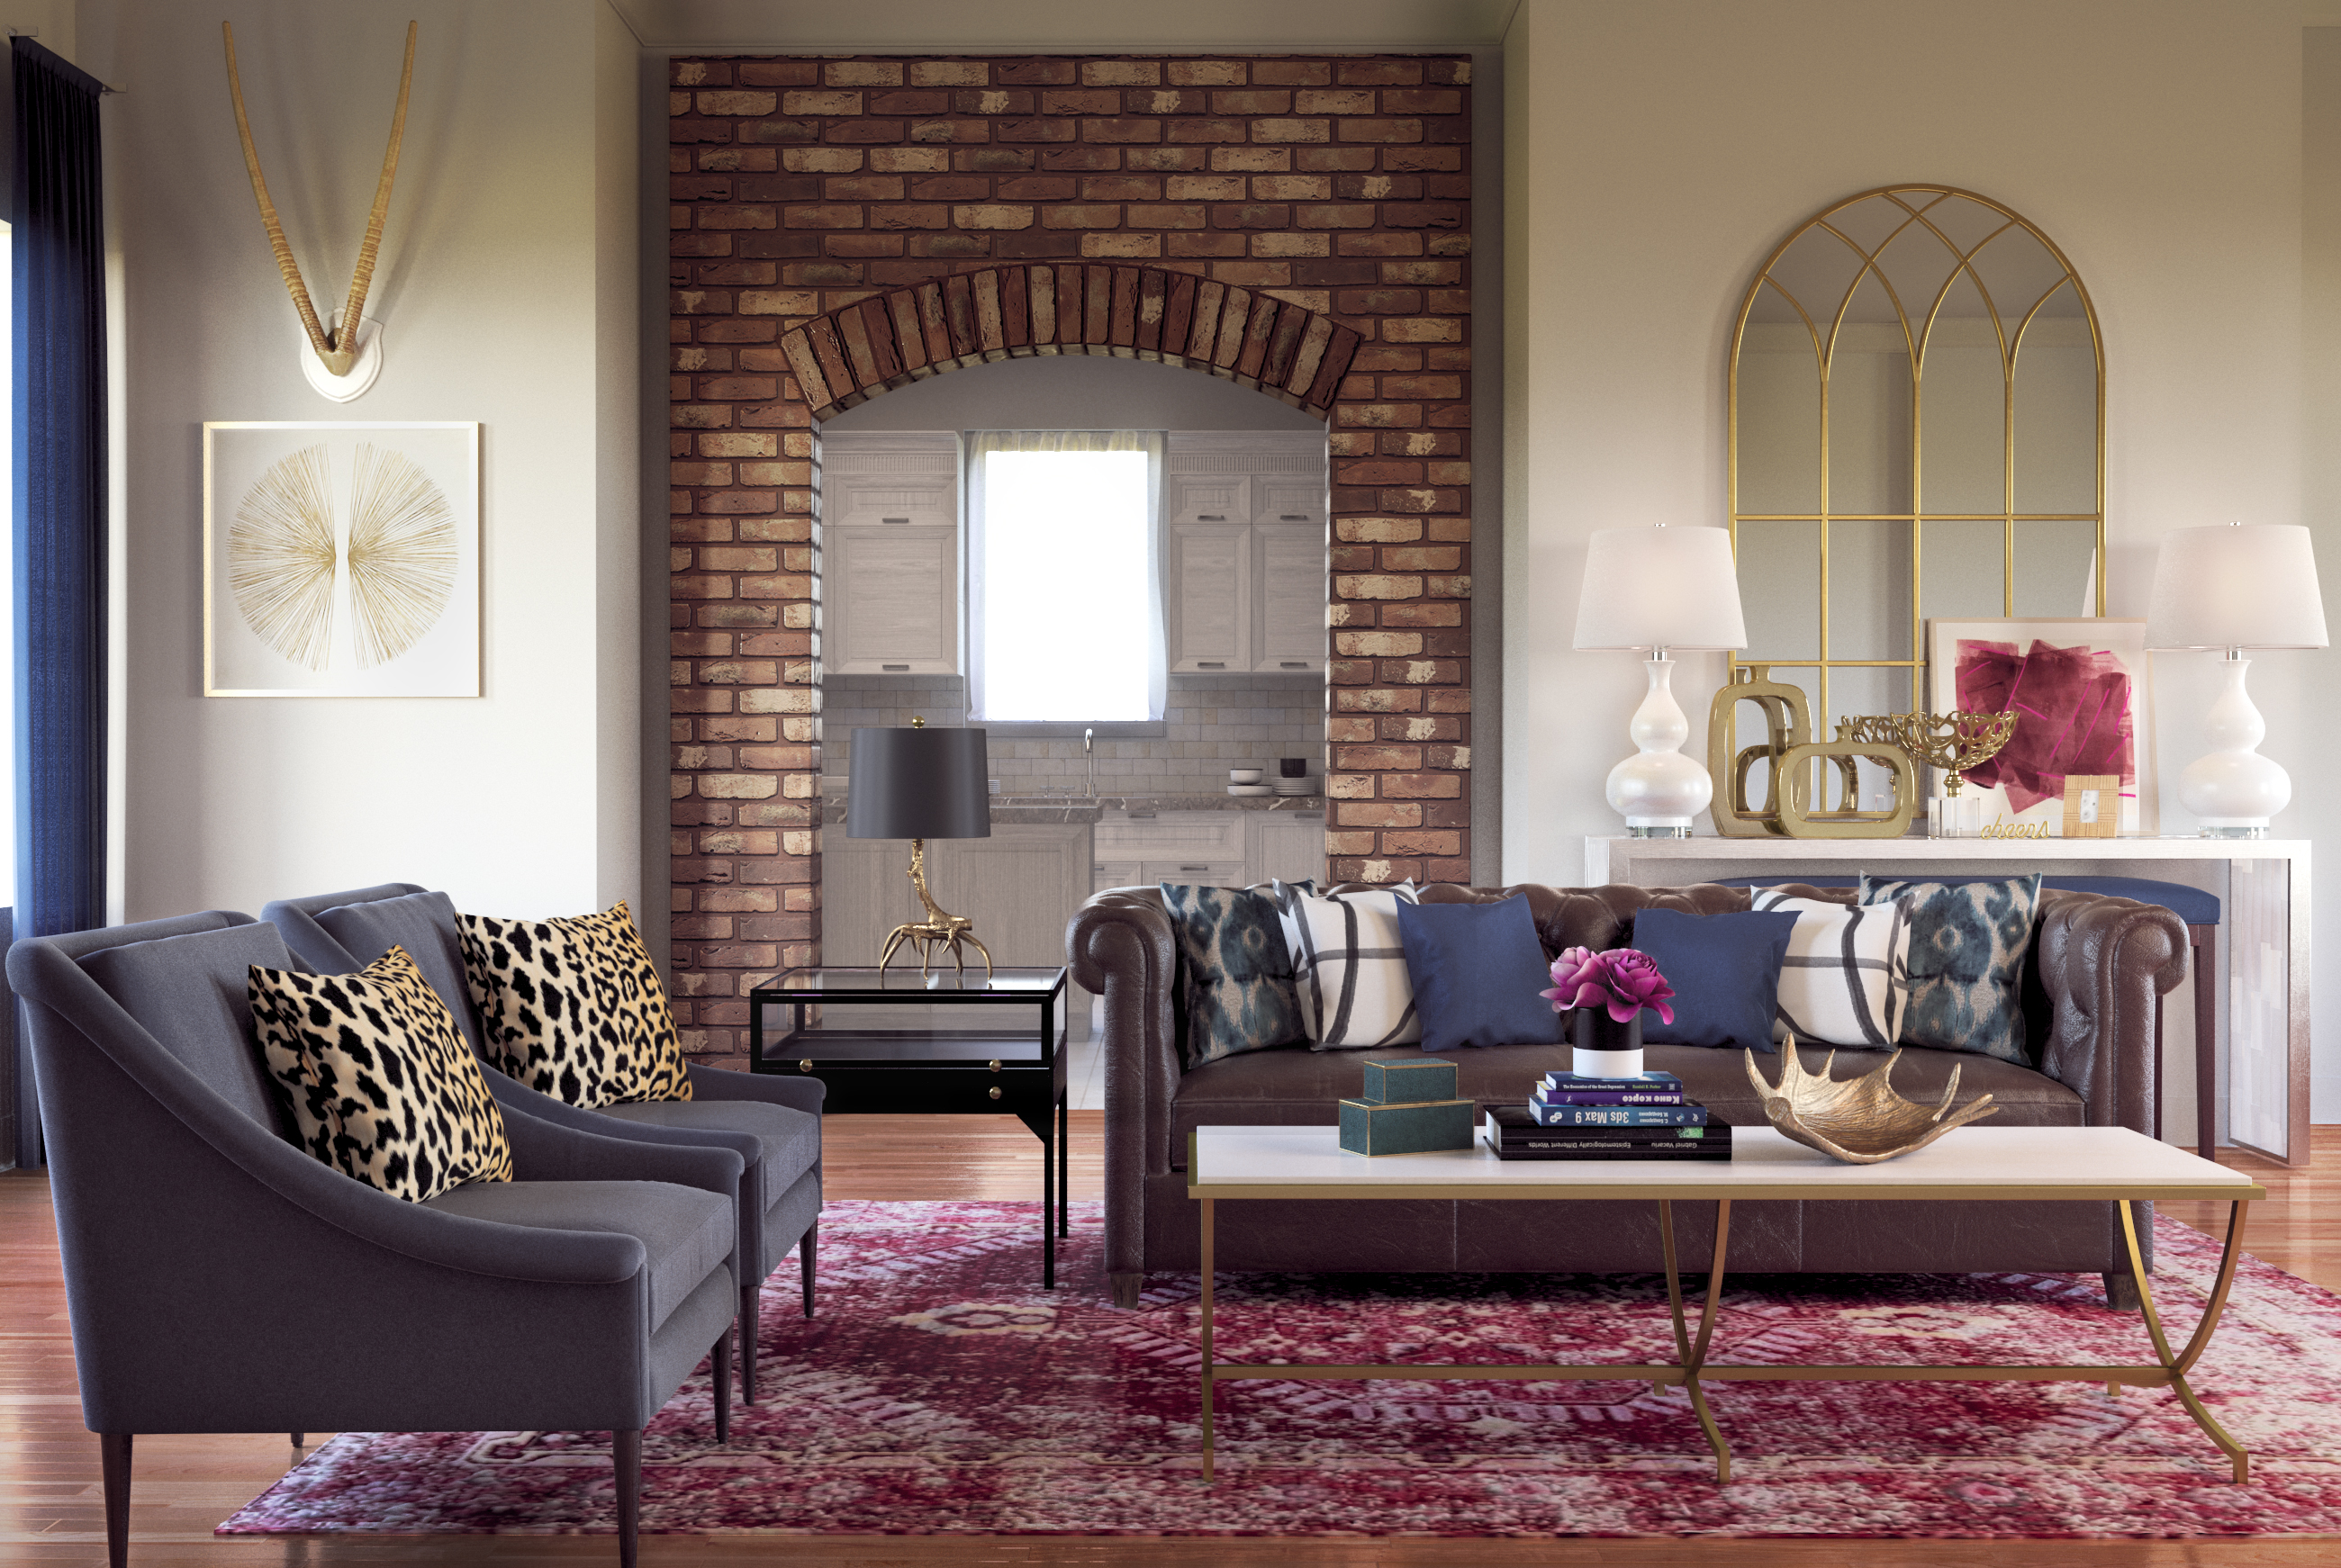 Contemporary Eclectic Glam Rustic Transitional Preppy